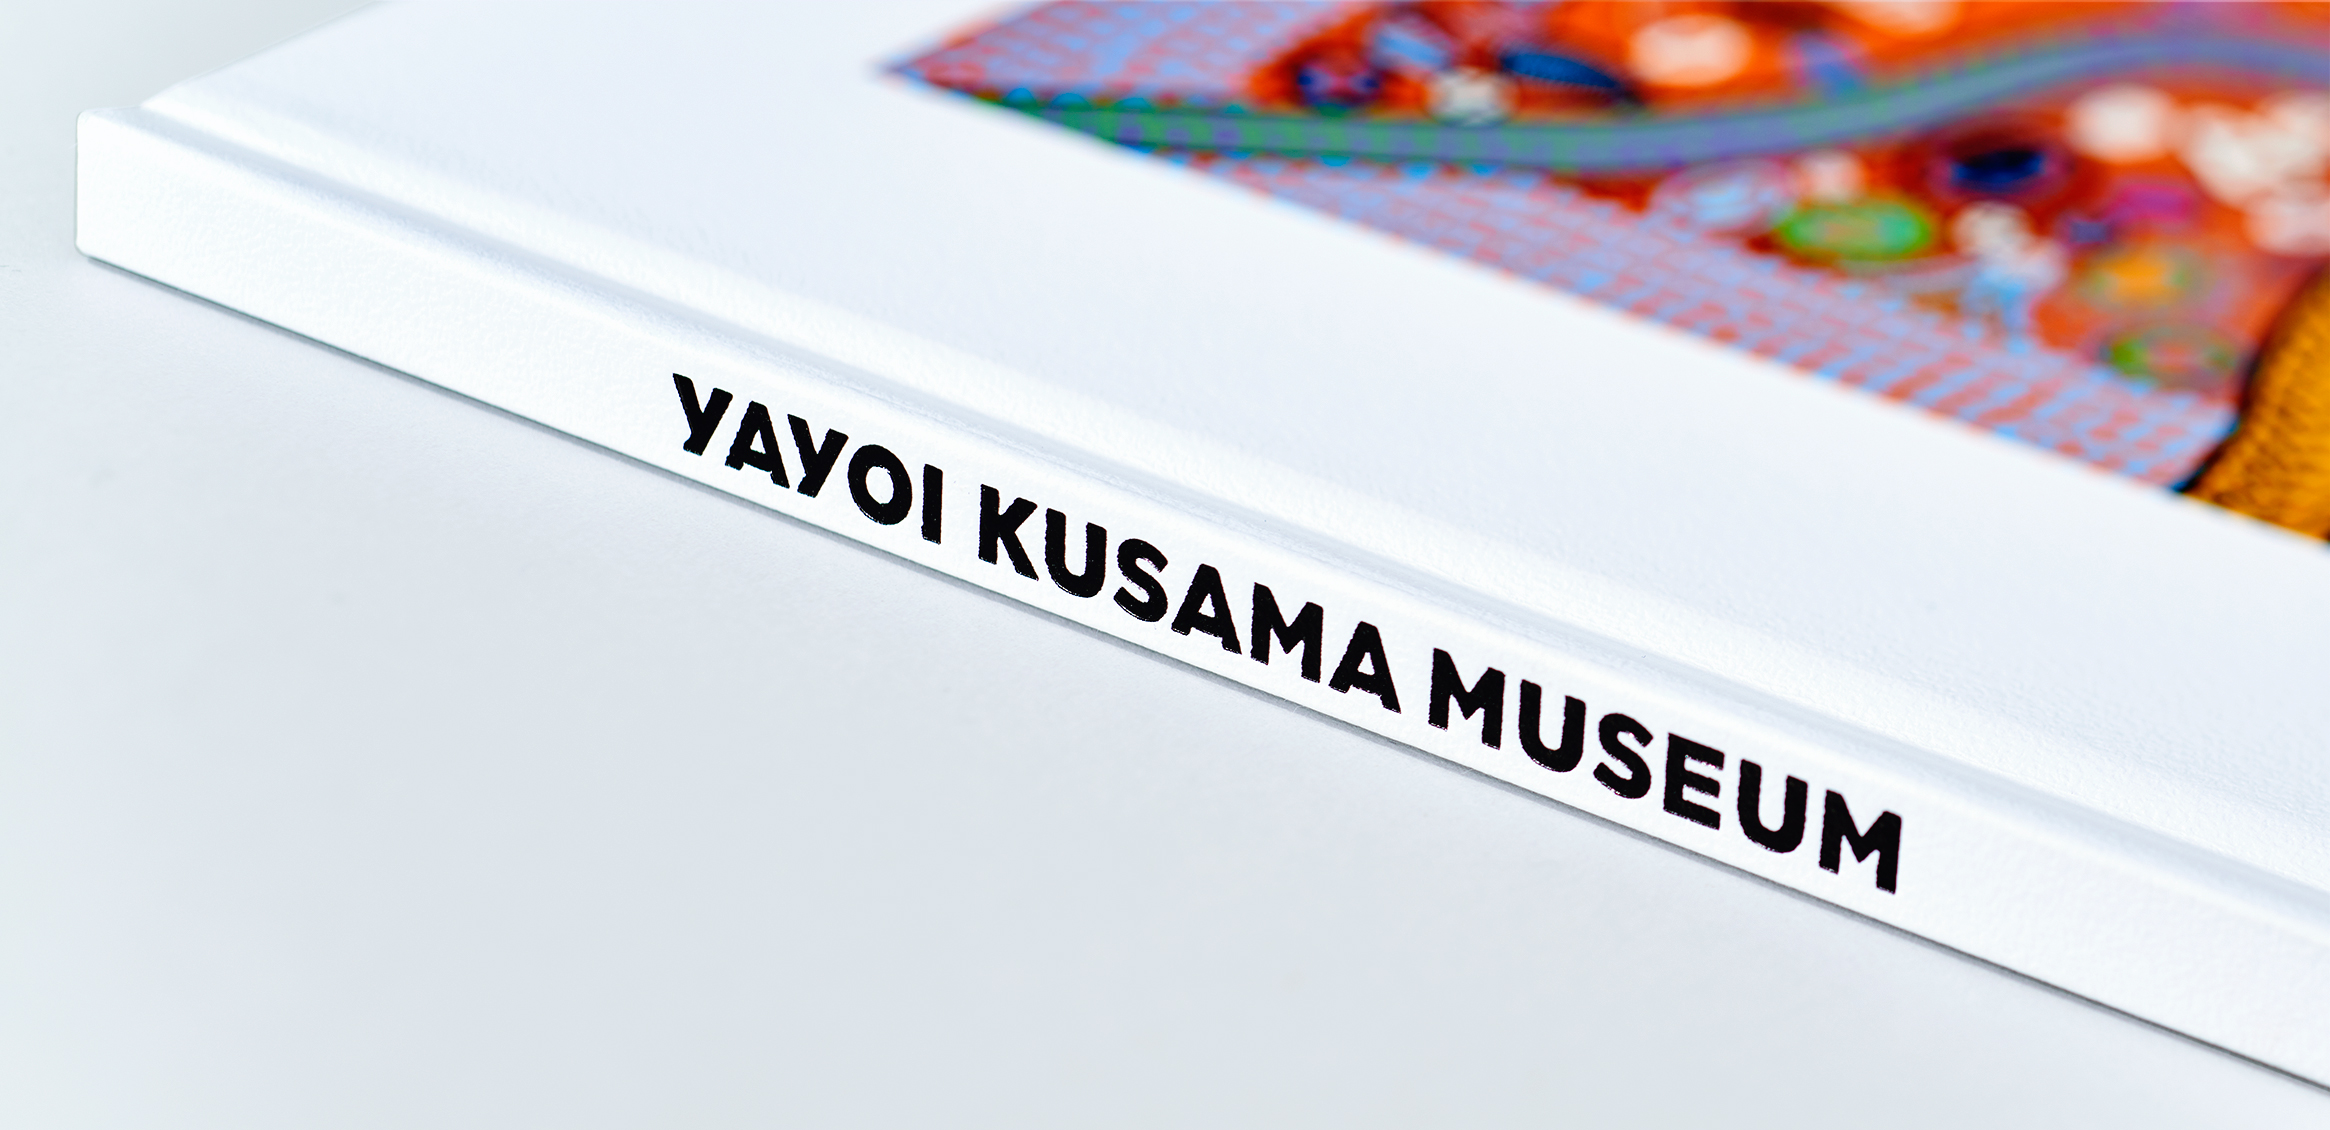 Yayoi Kusama Museum Inaugural Exhibition Commemorative Catalog2枚目